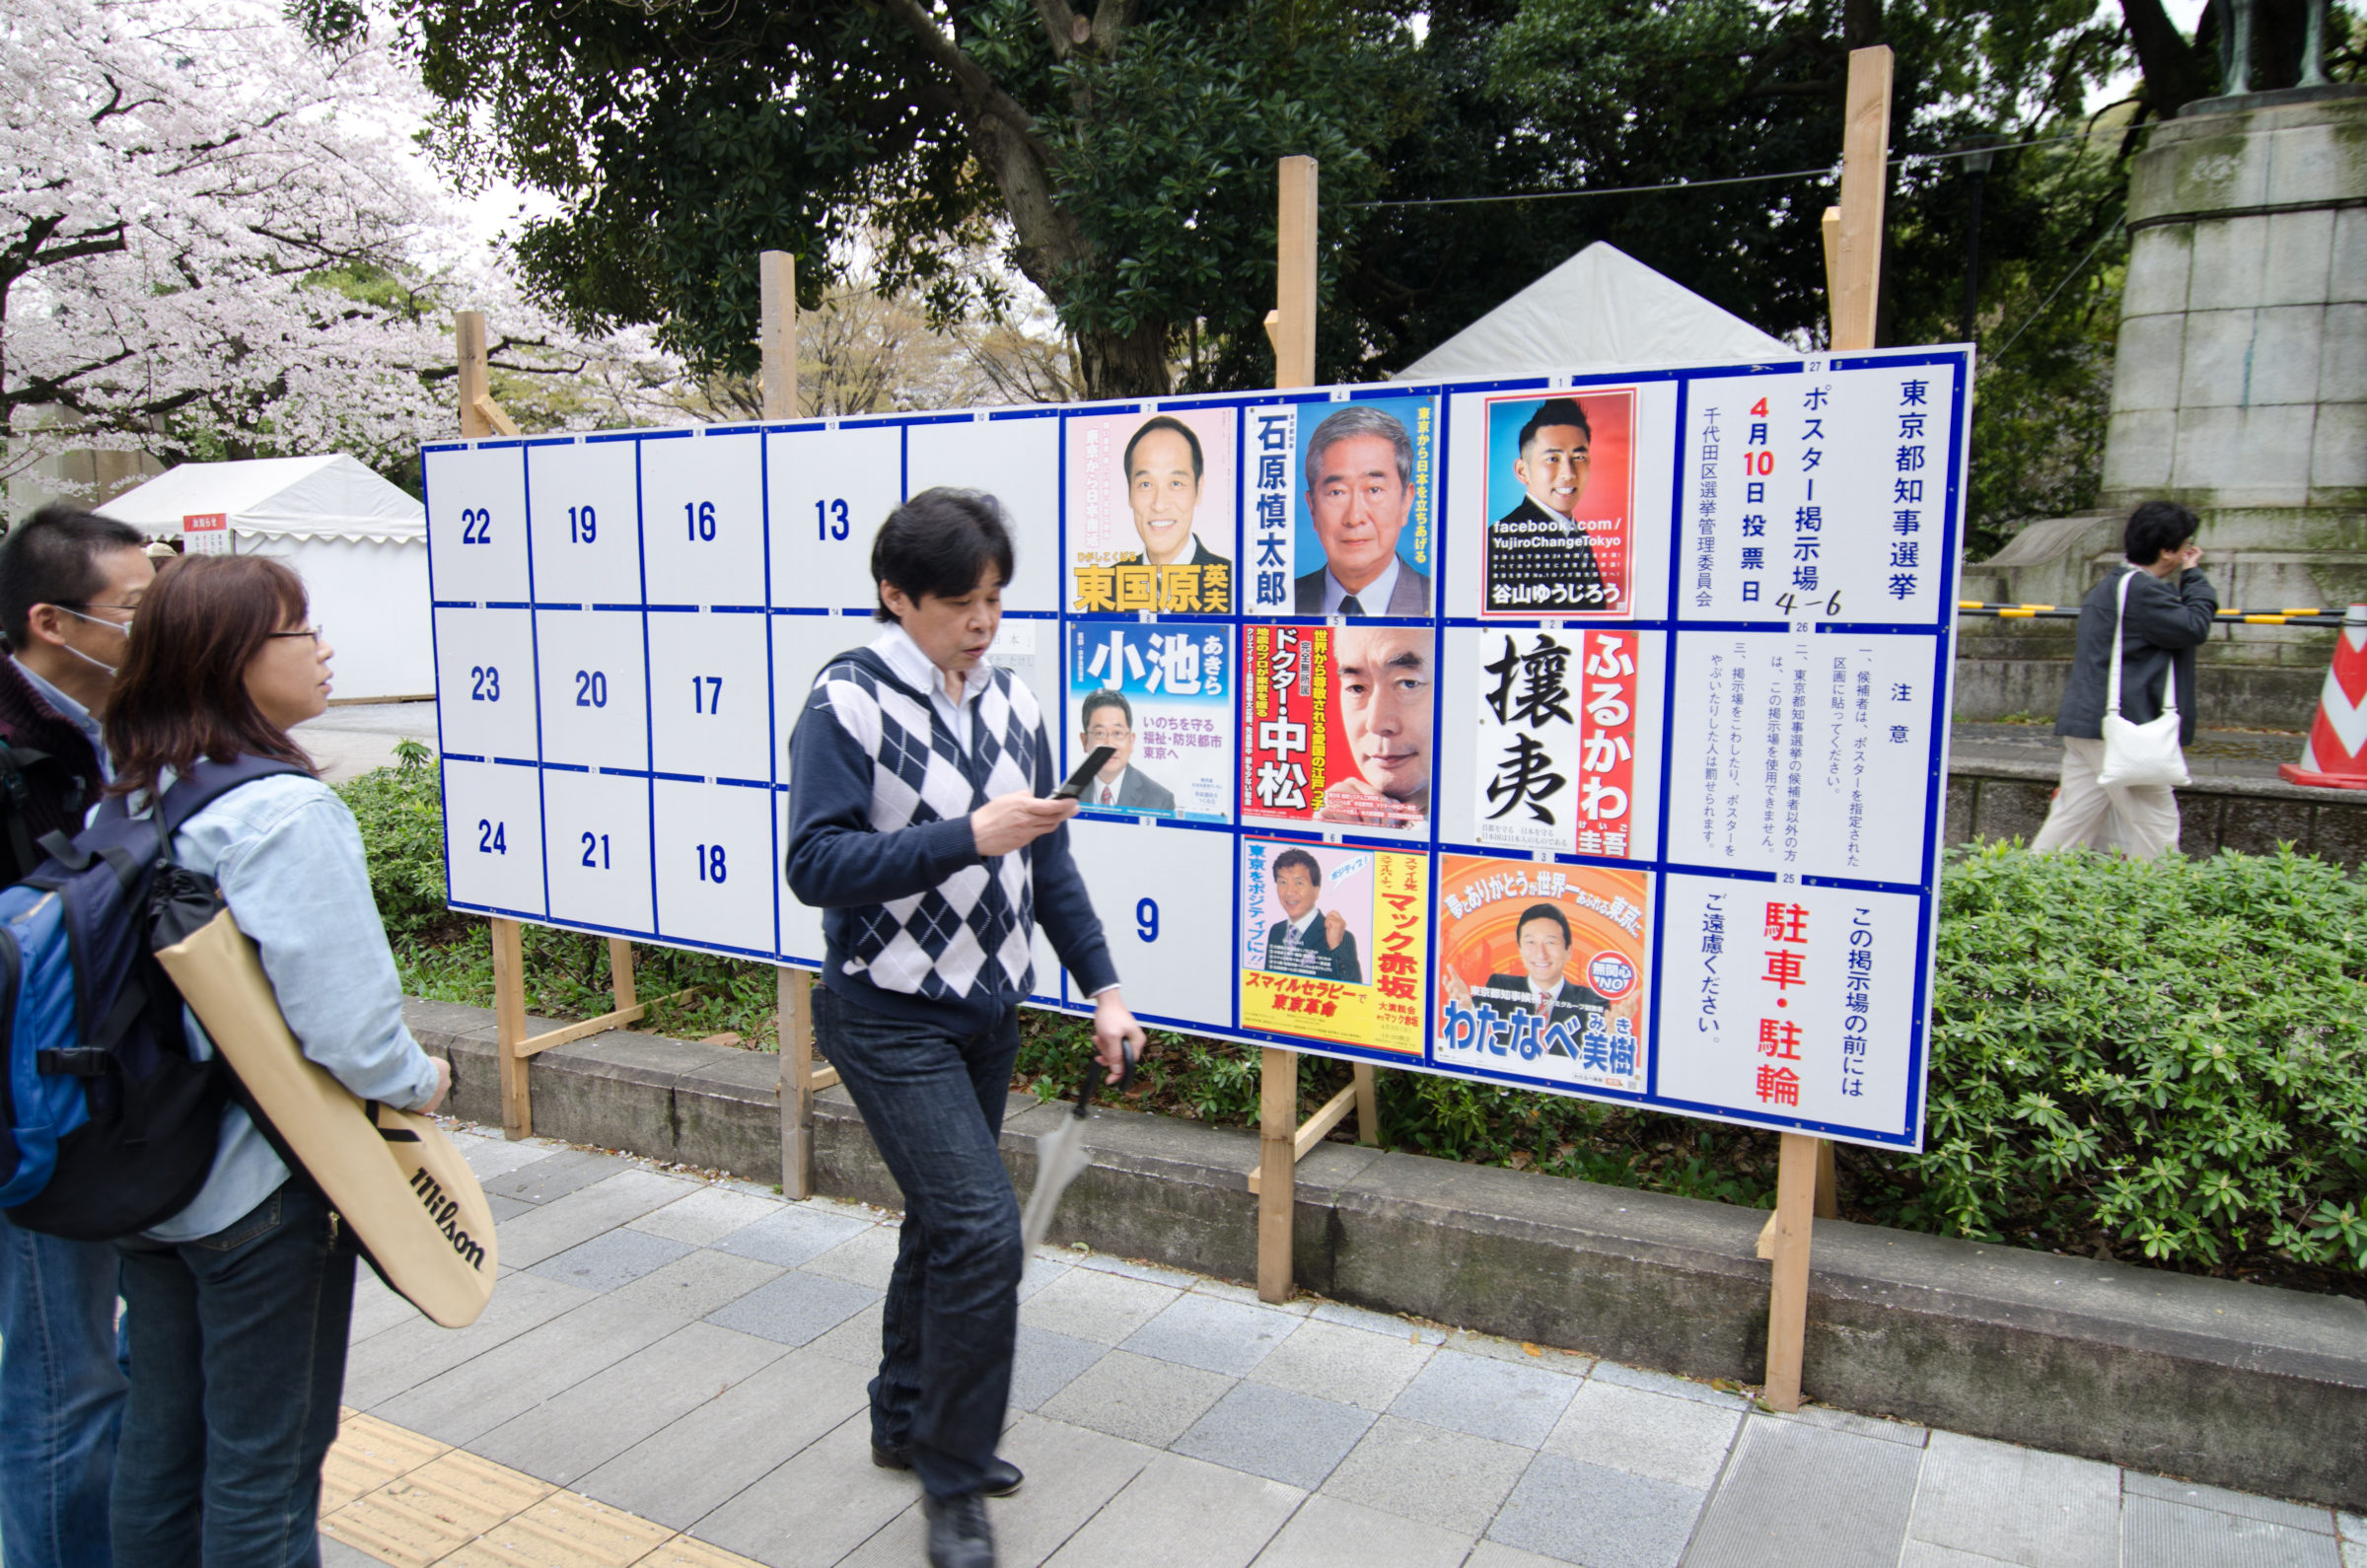 Japan elections campaign posters